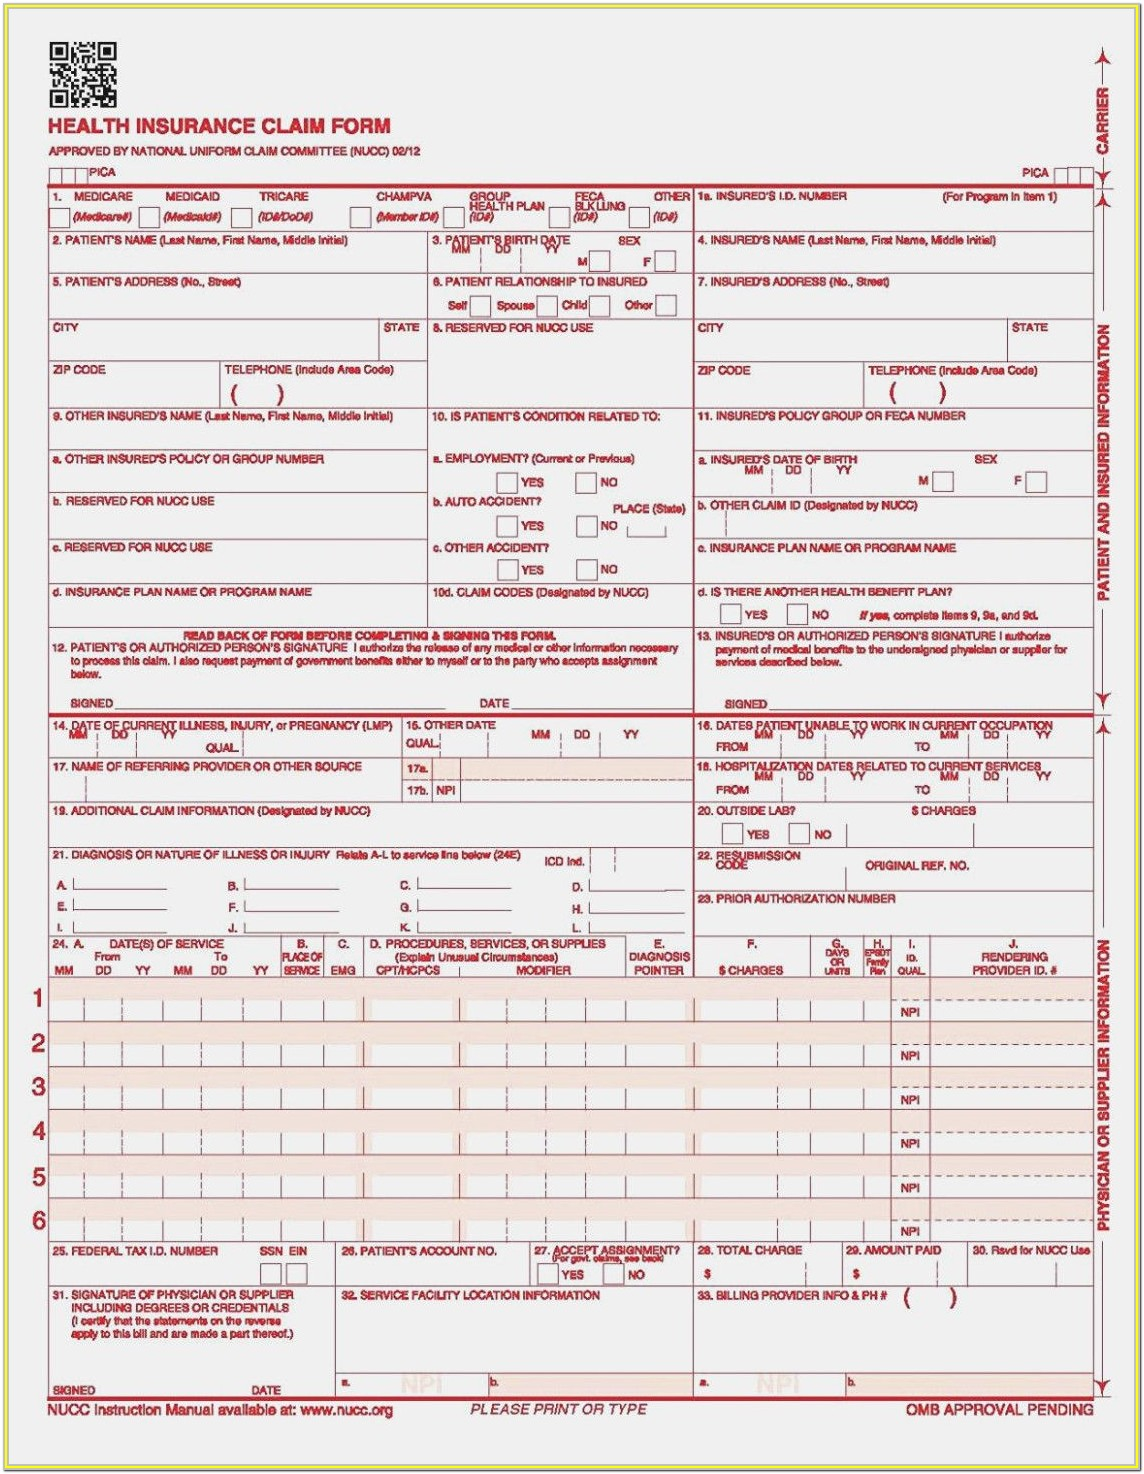 Sample Hcfa 1500 Form